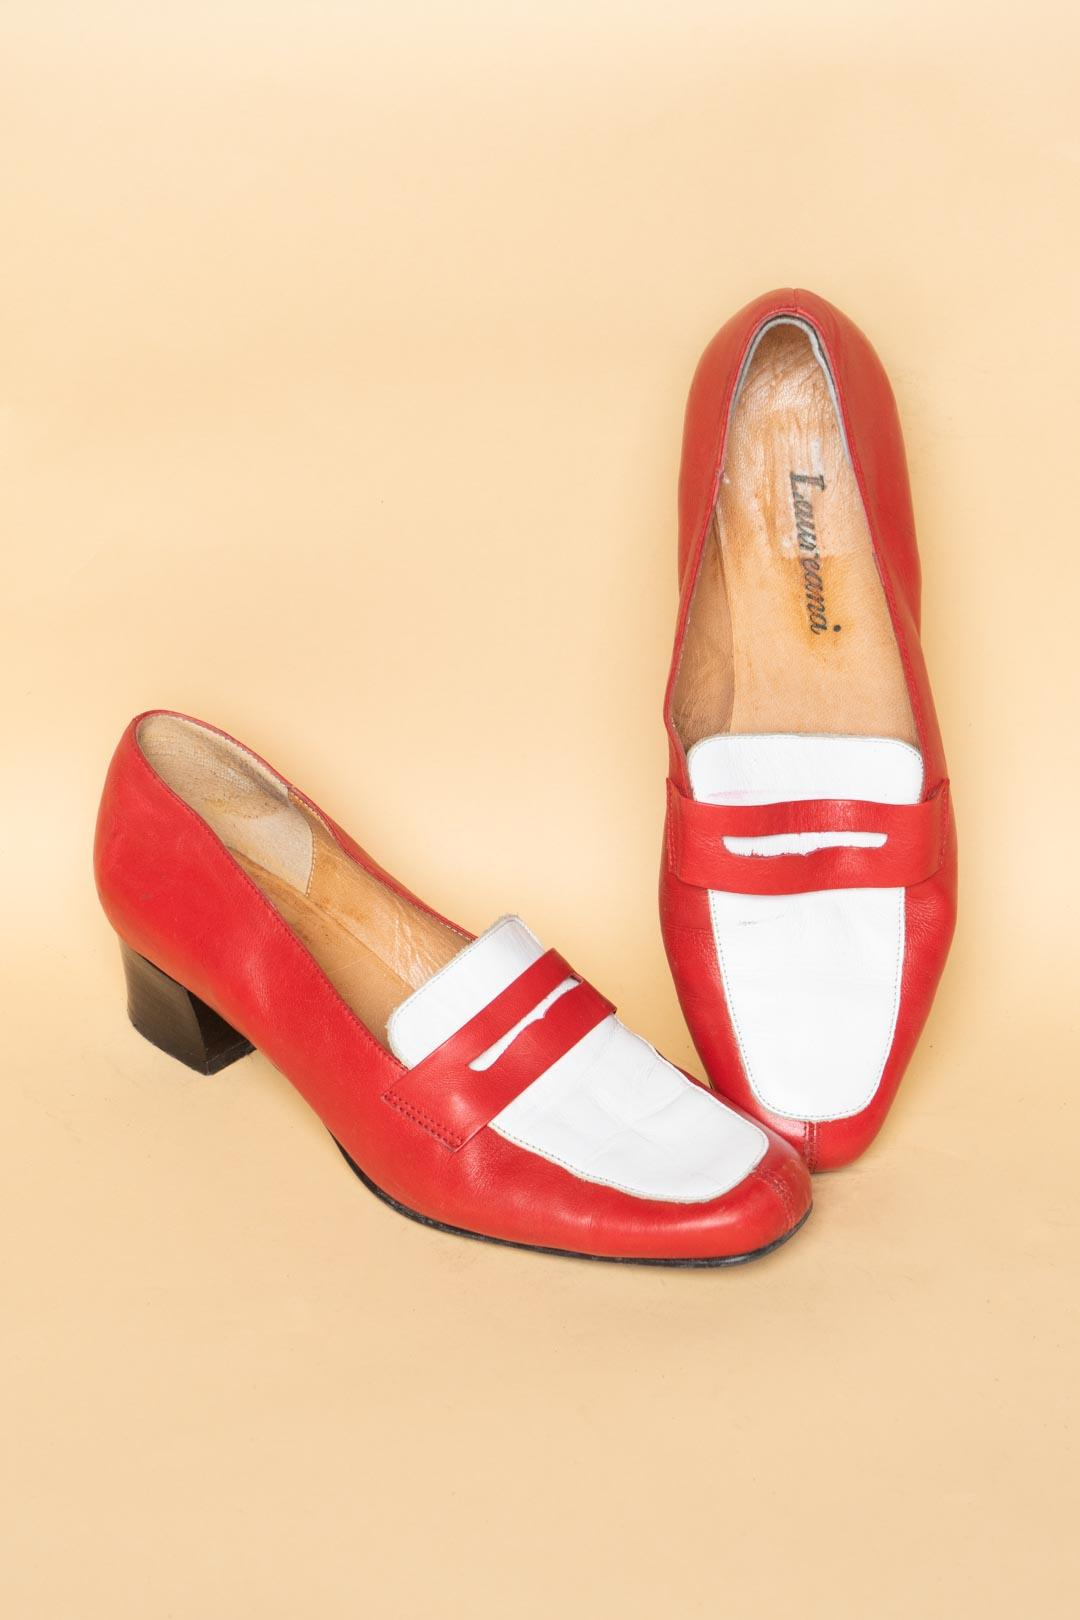 Red White Leather Shoes - VinoKilo.com